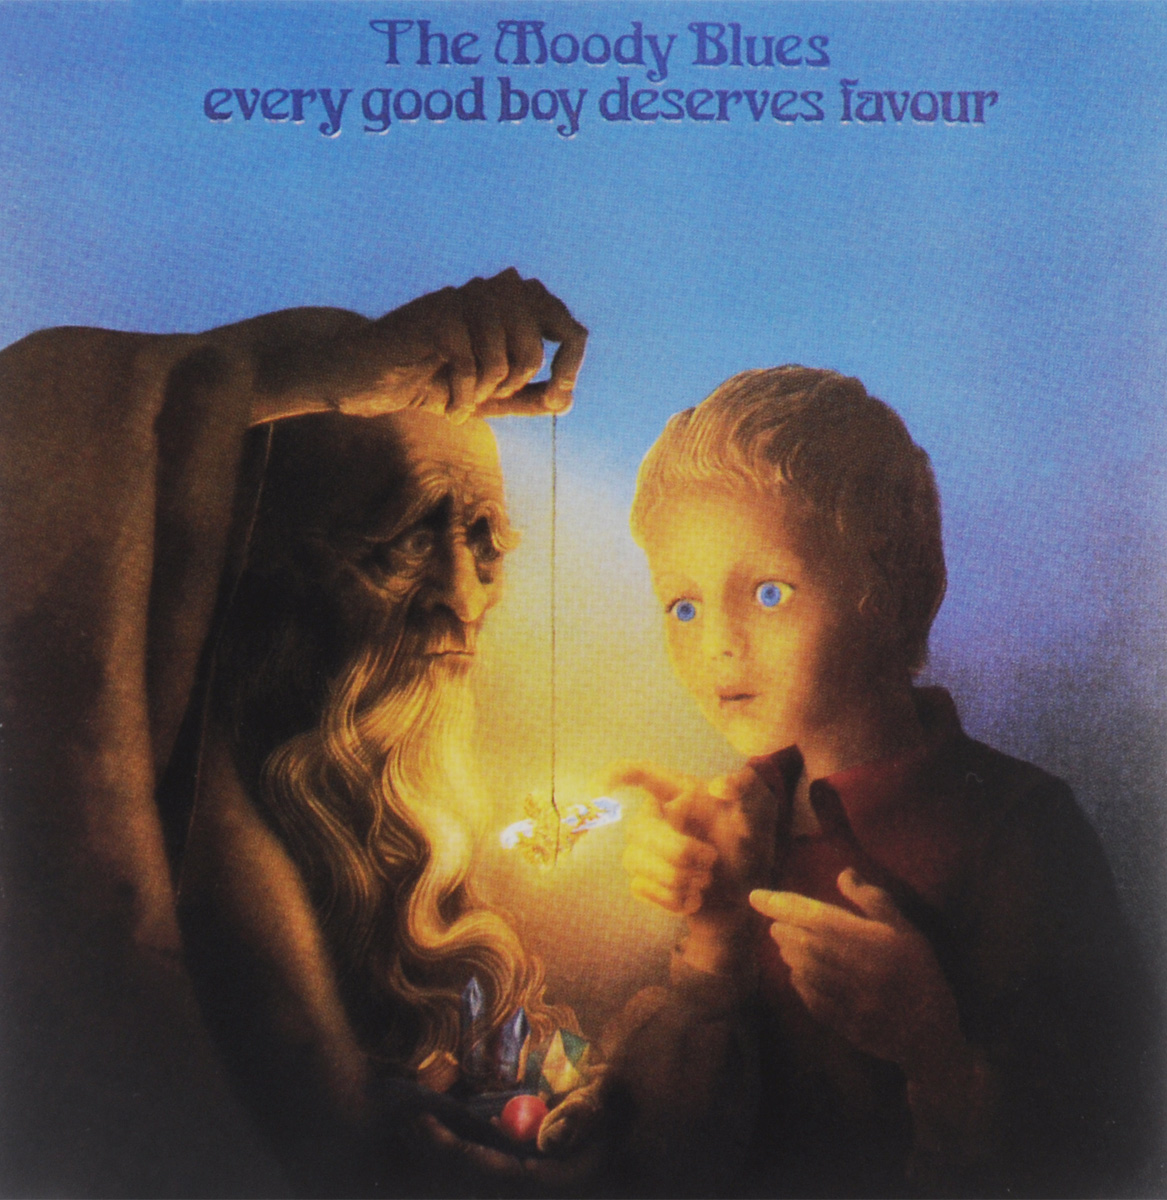 The Moody Blues The Moody Blues Every Good Boy Deserves Favour